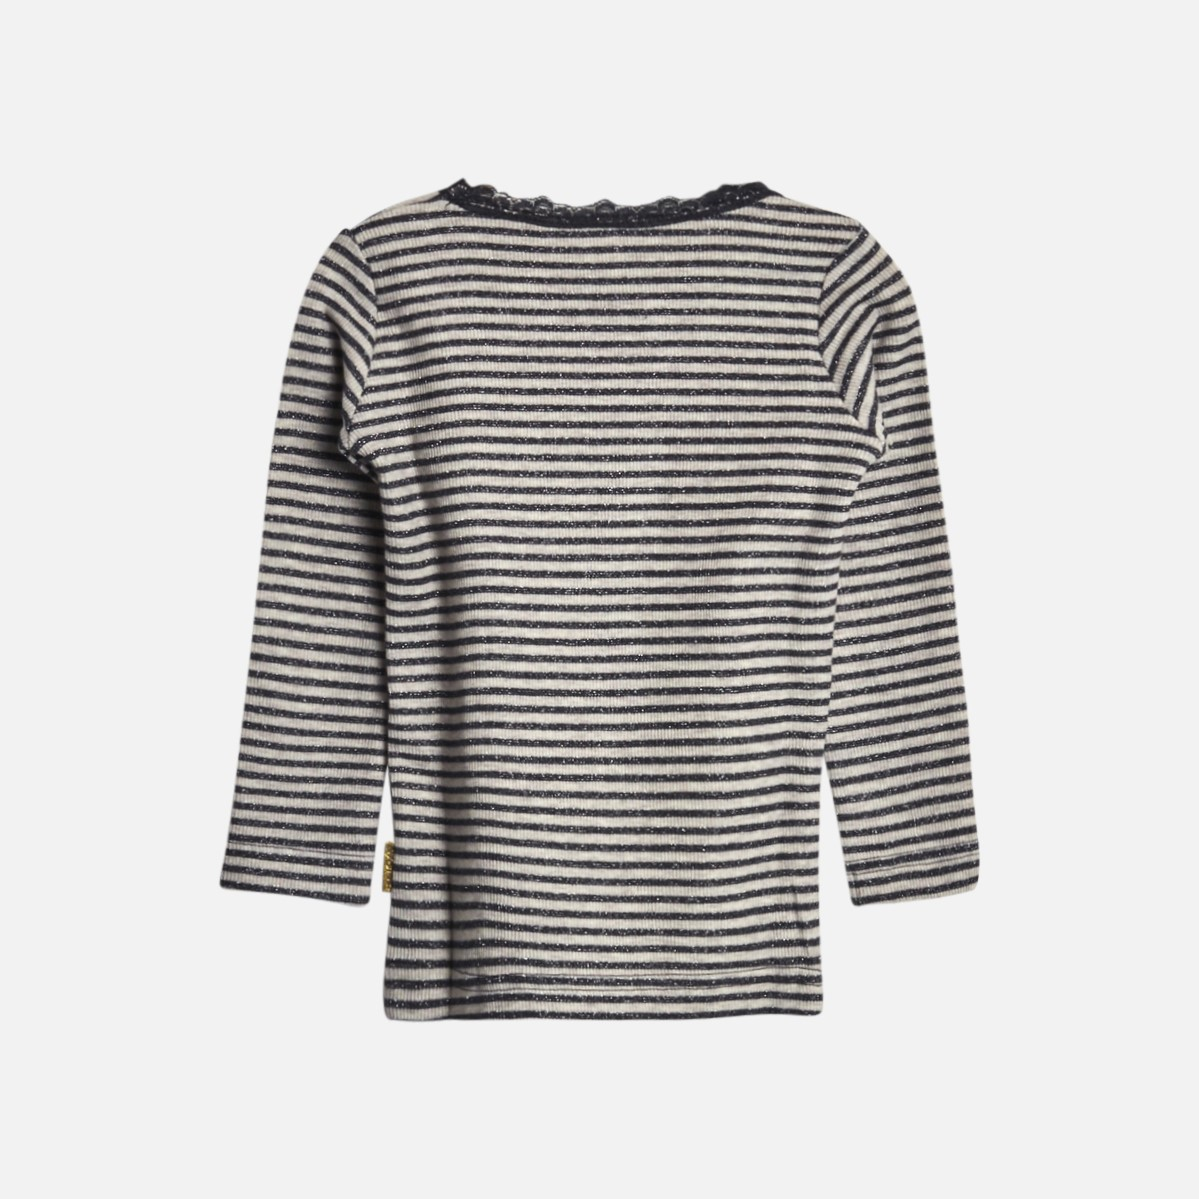 HUST AND CLAIRE | ALANIS T-SHIRT L/S, DARK GREY